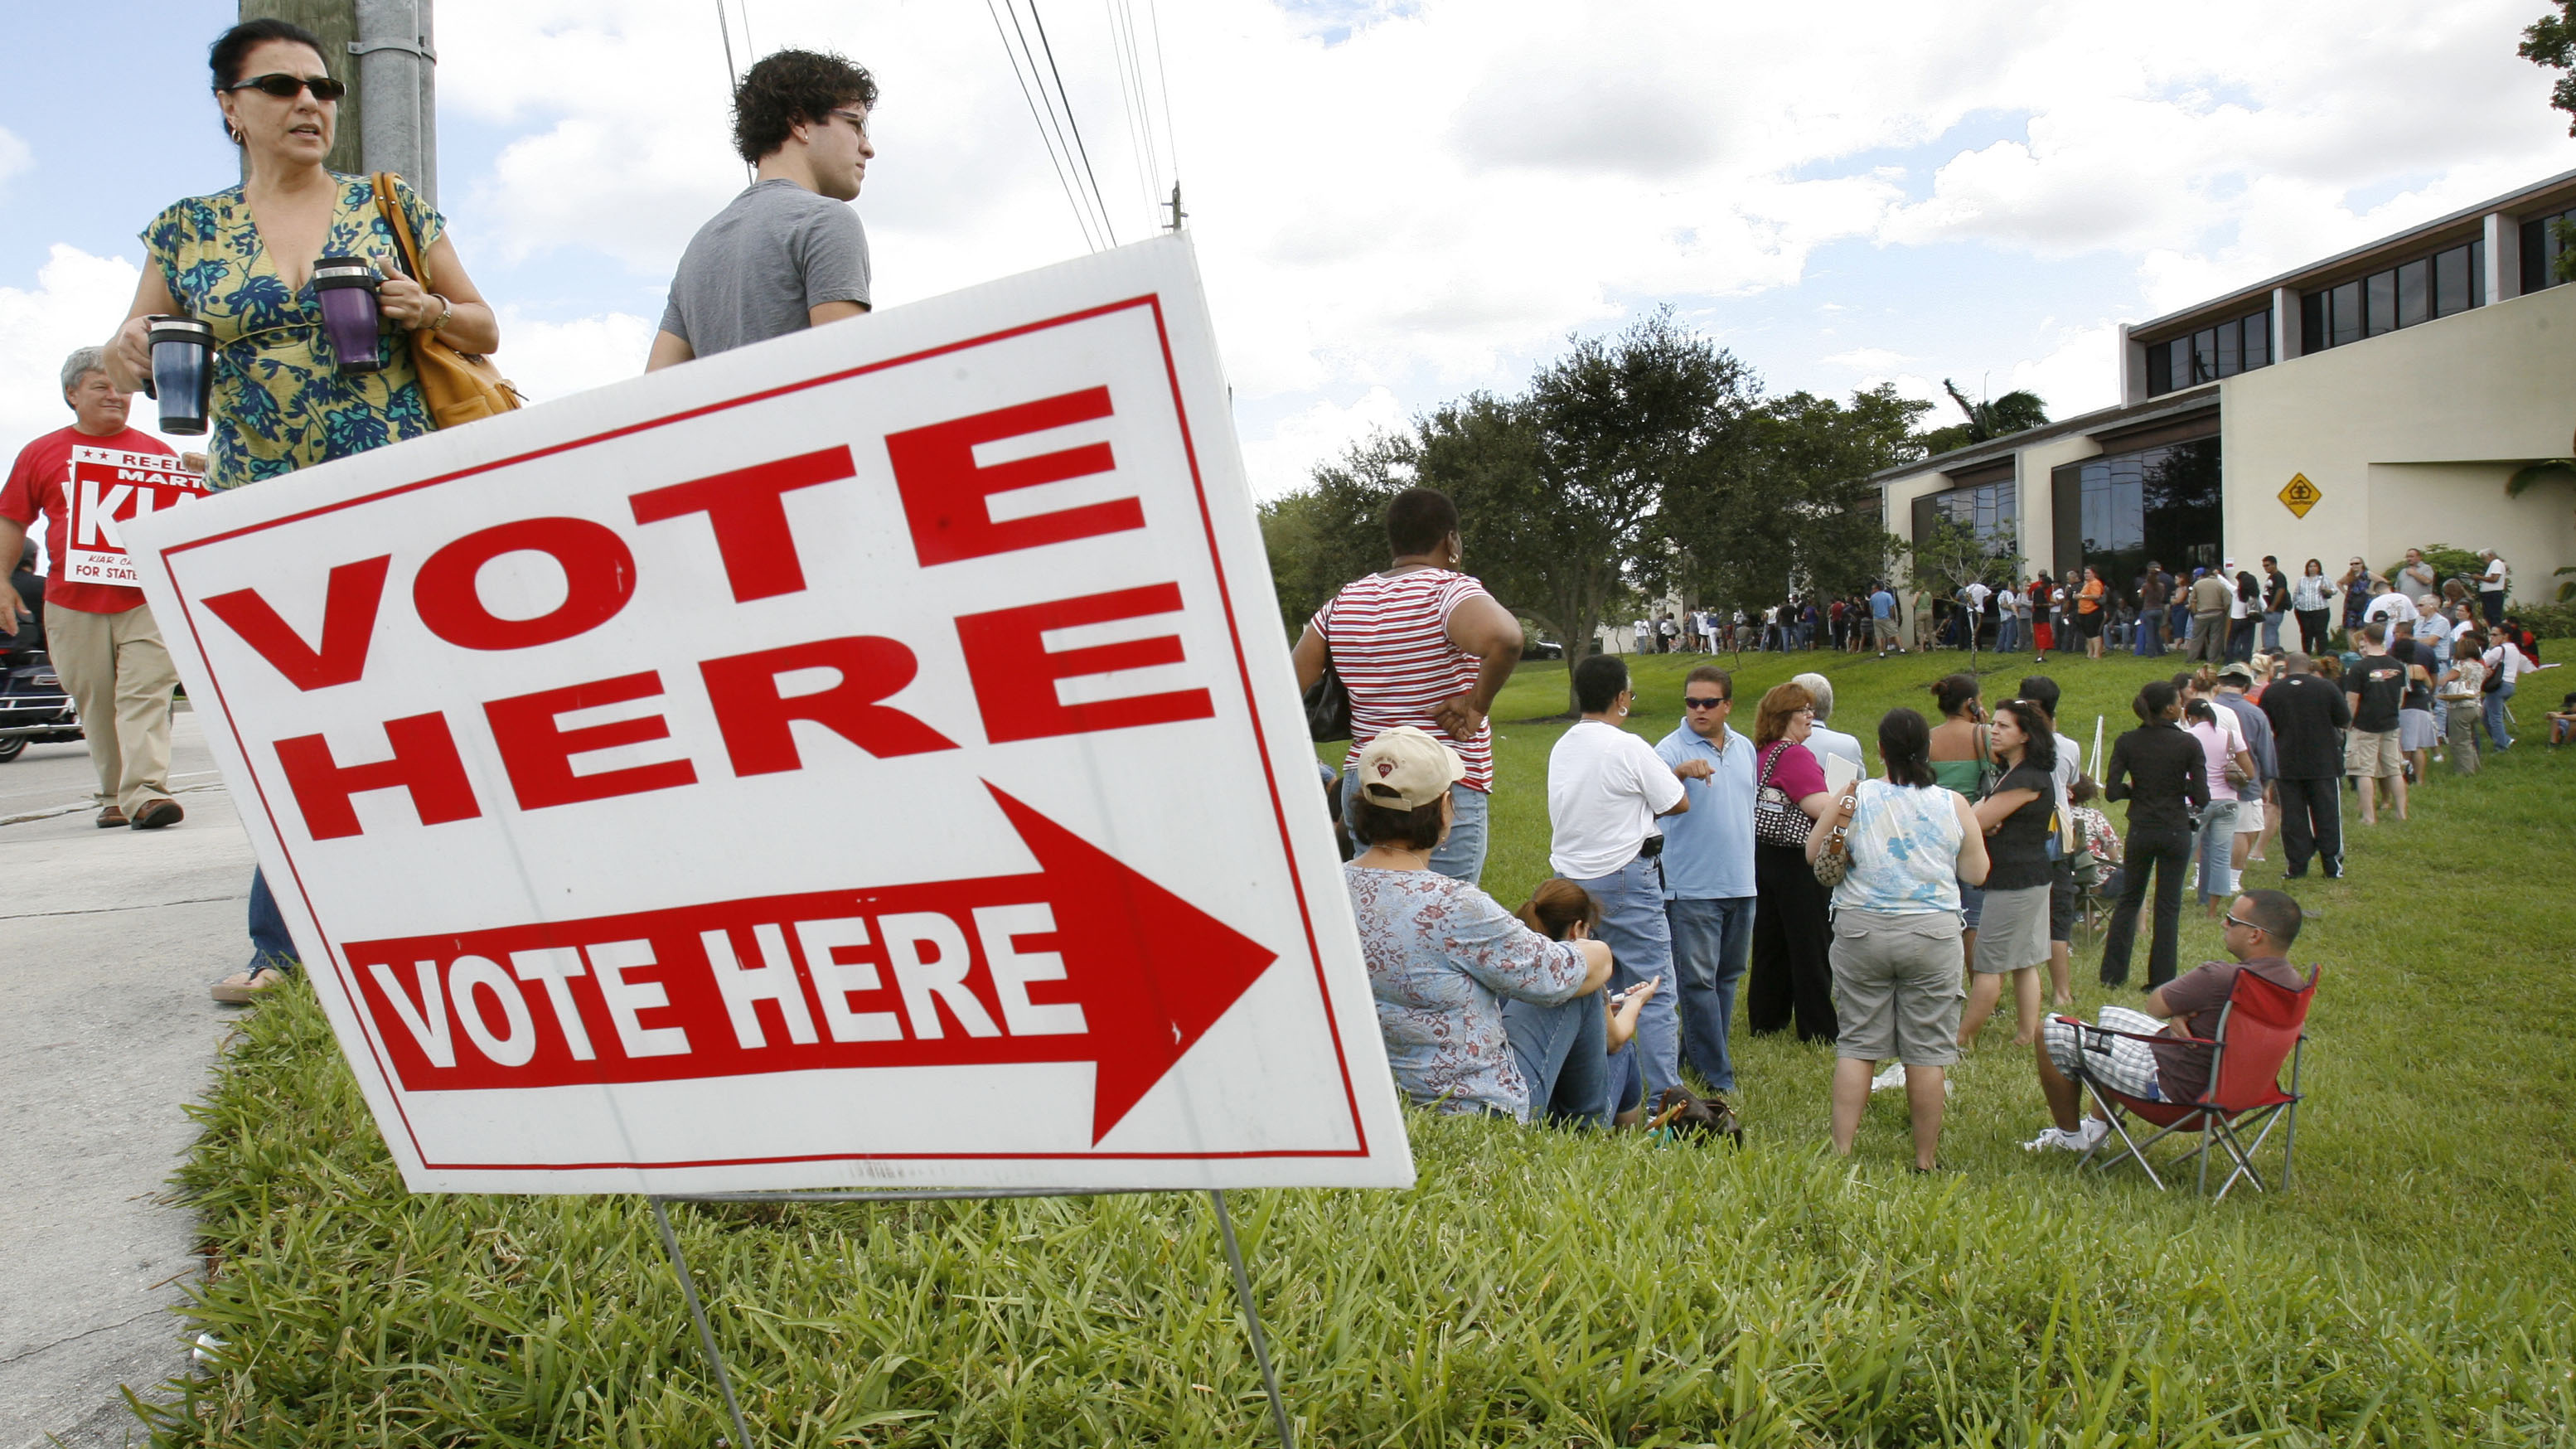 In 2008 some voters waited in line for as long as 4 hours.